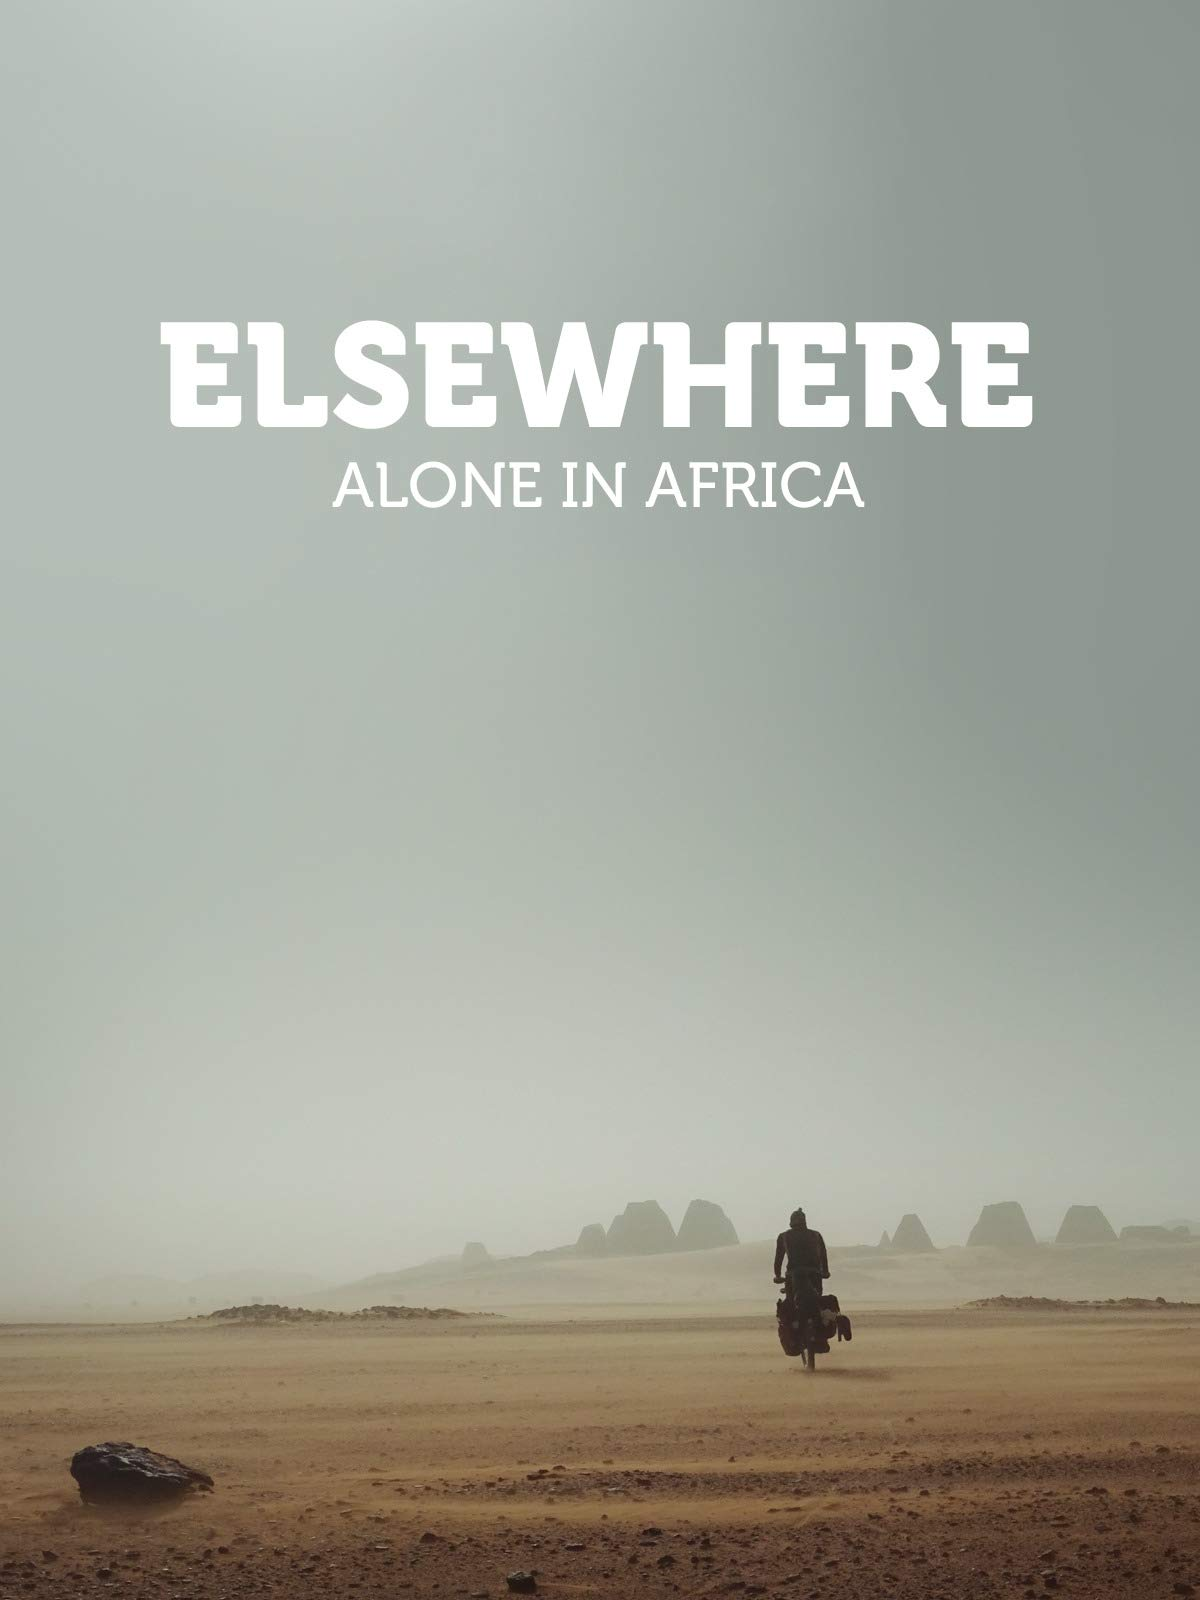 Elsewhere - Alone in Africa